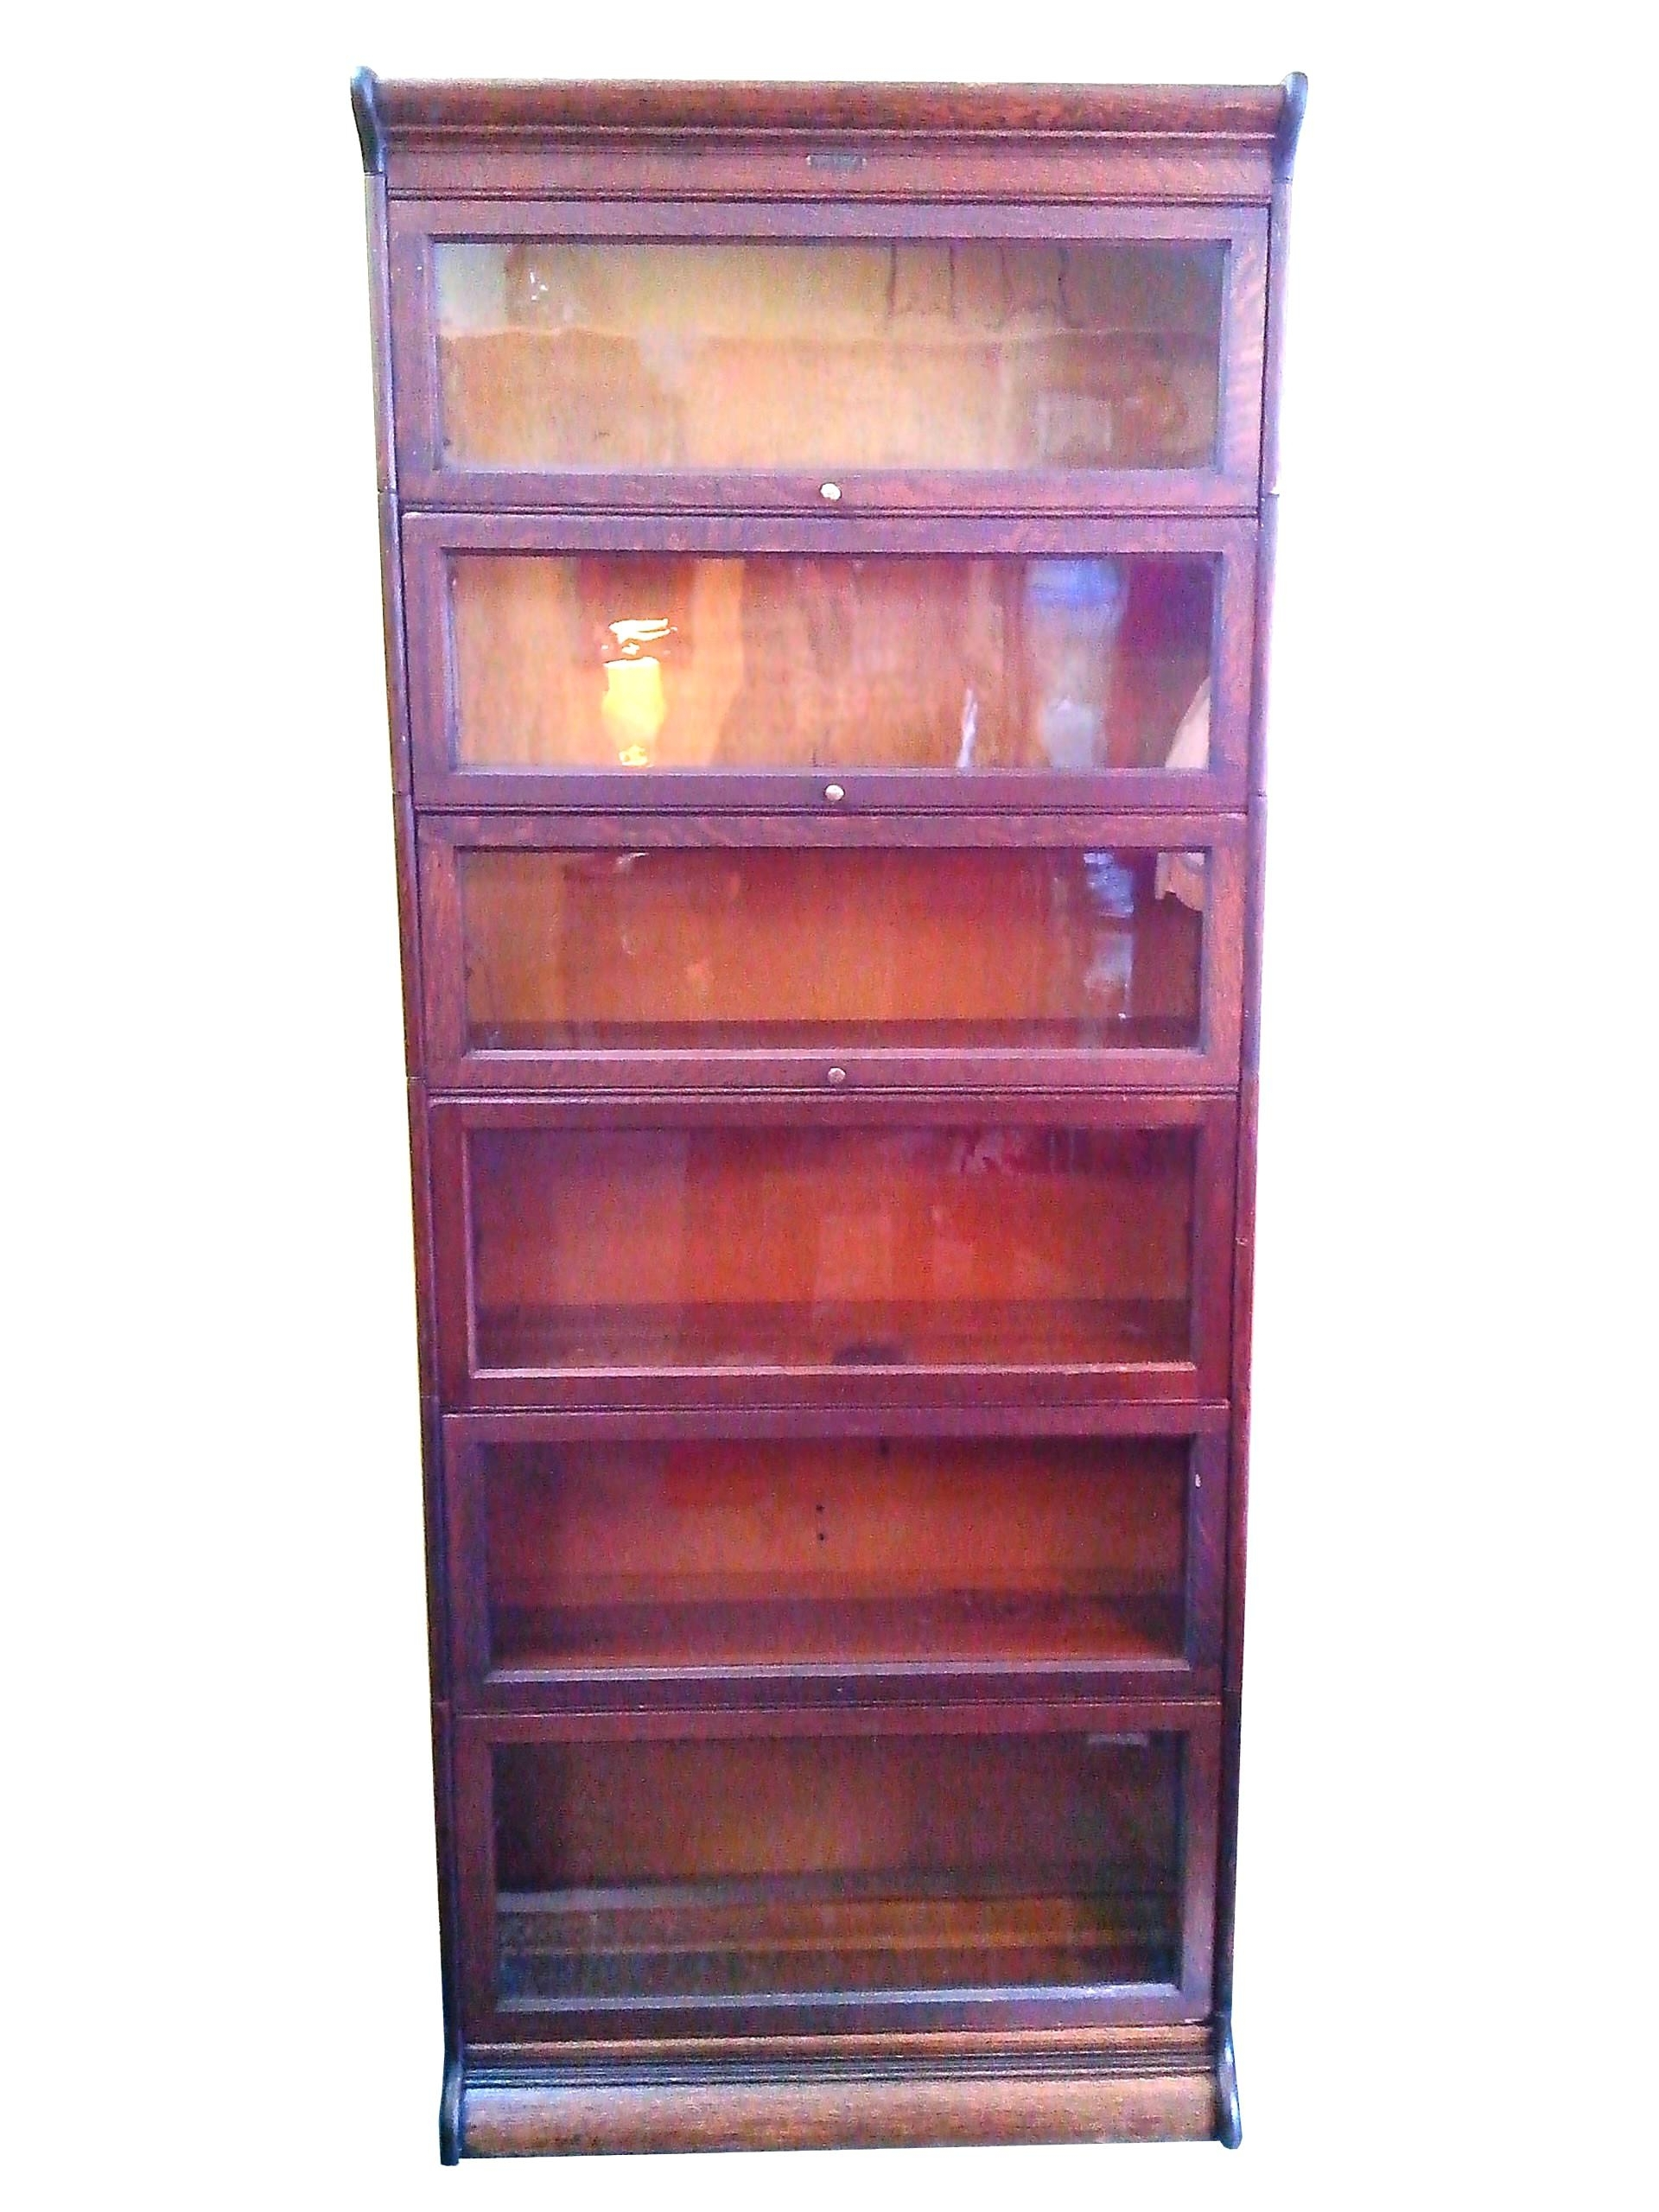 Widely Used Lawyers Bookcase Lawyers Bookcases Glass Doors Lawyers Bookcase Throughout Craigslist Bookcases (View 11 of 15)